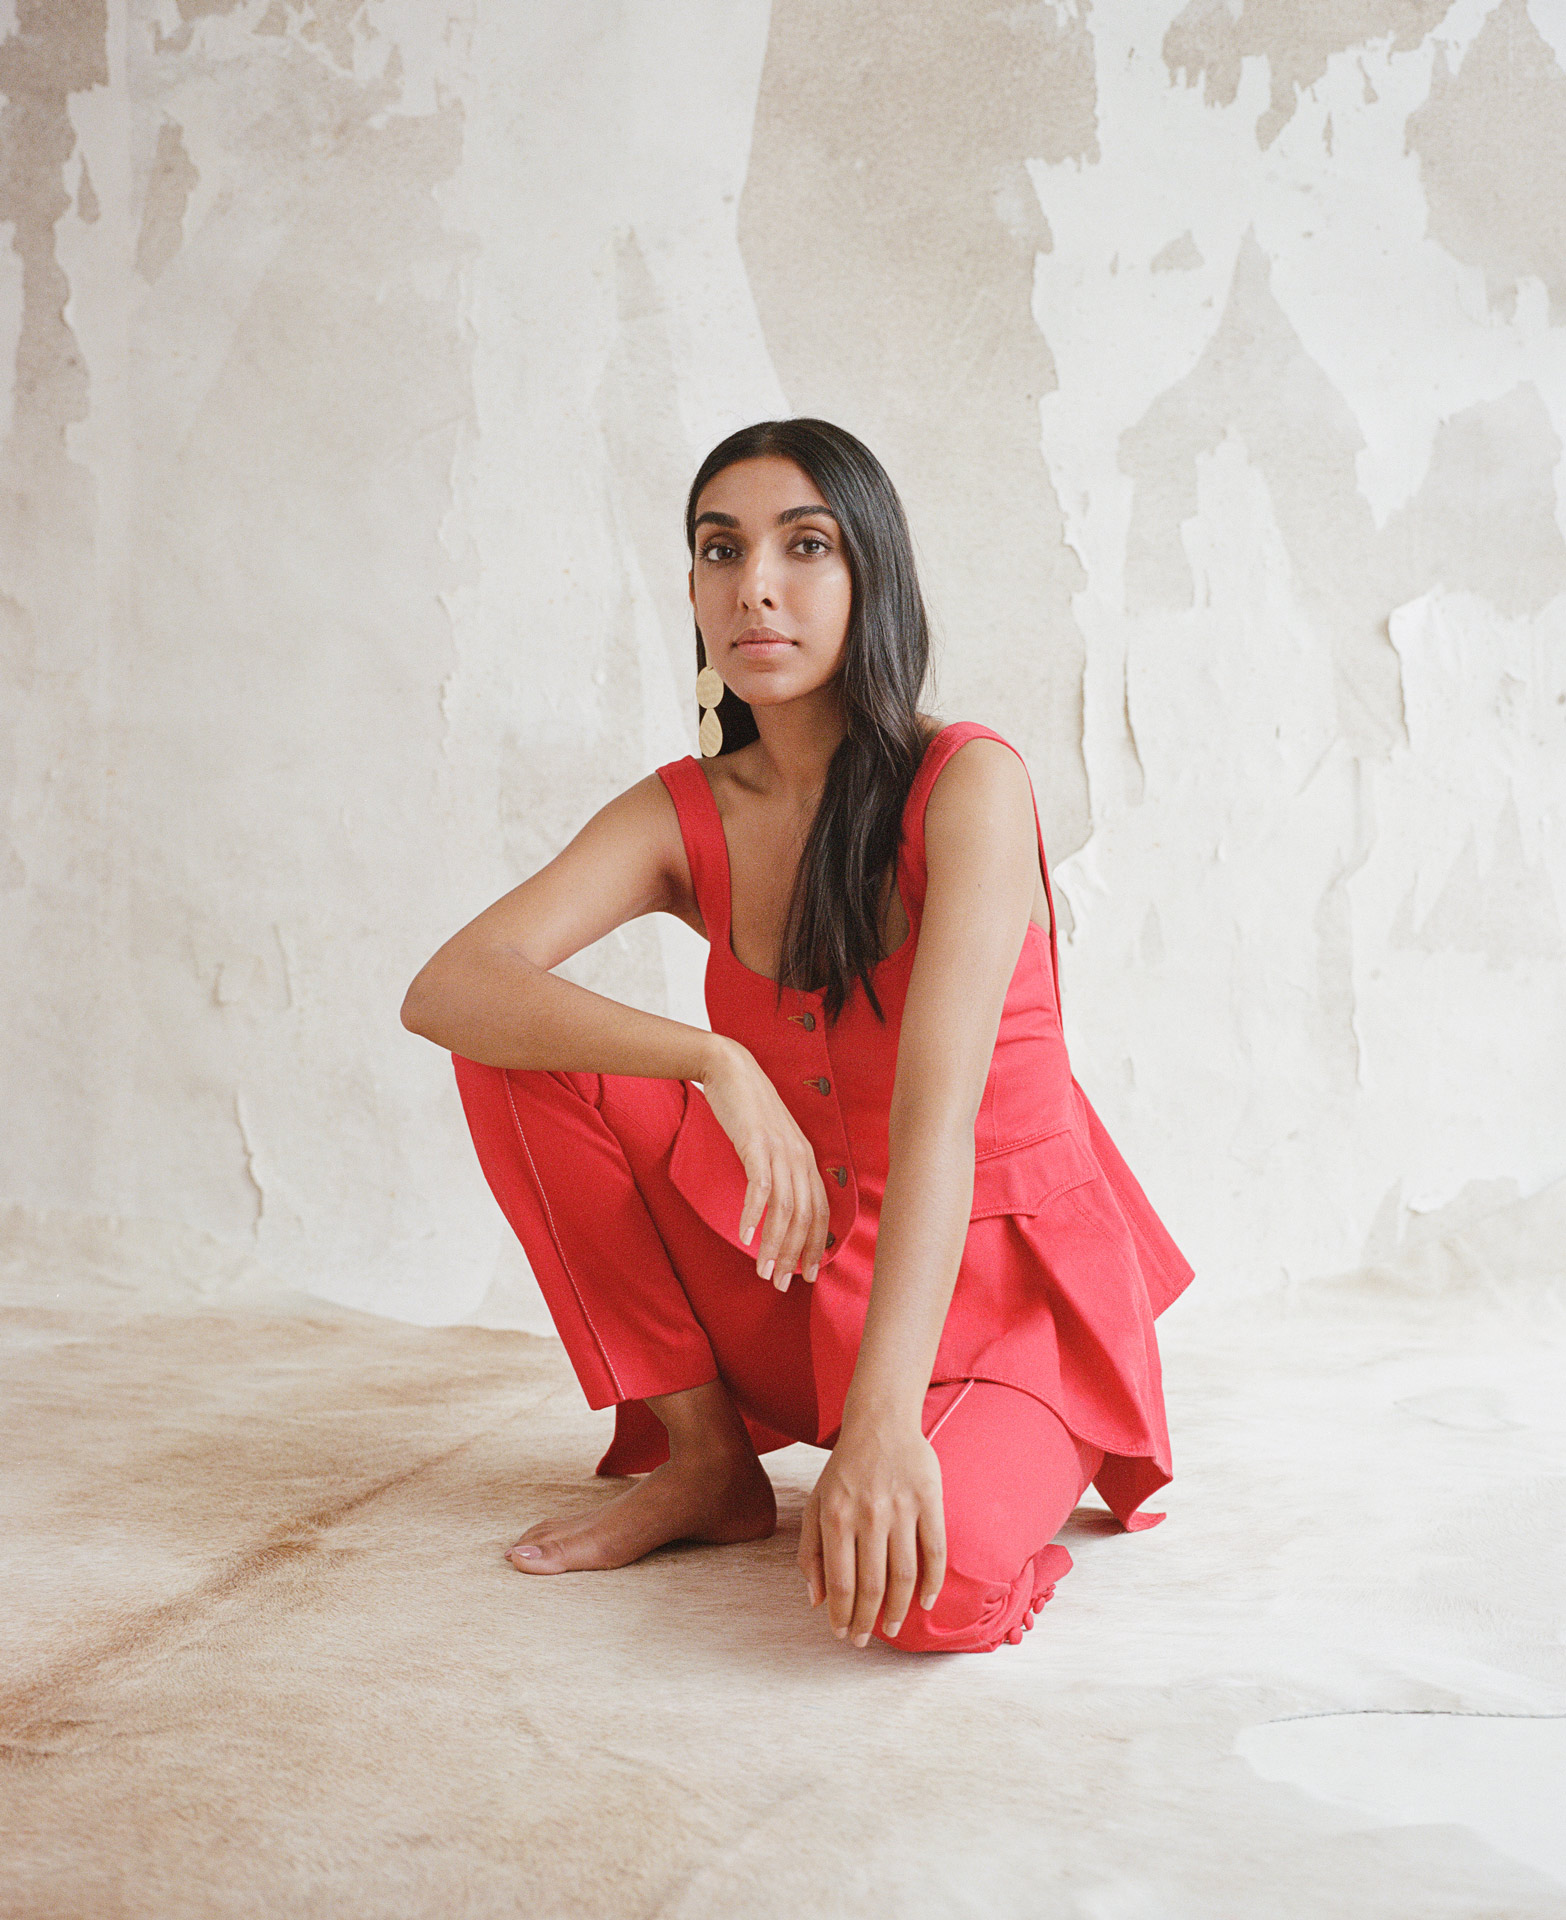 writer Rupi Kaur wearing red ensemble looking at camera by Oumayma B Tanfous for Vogue Espana